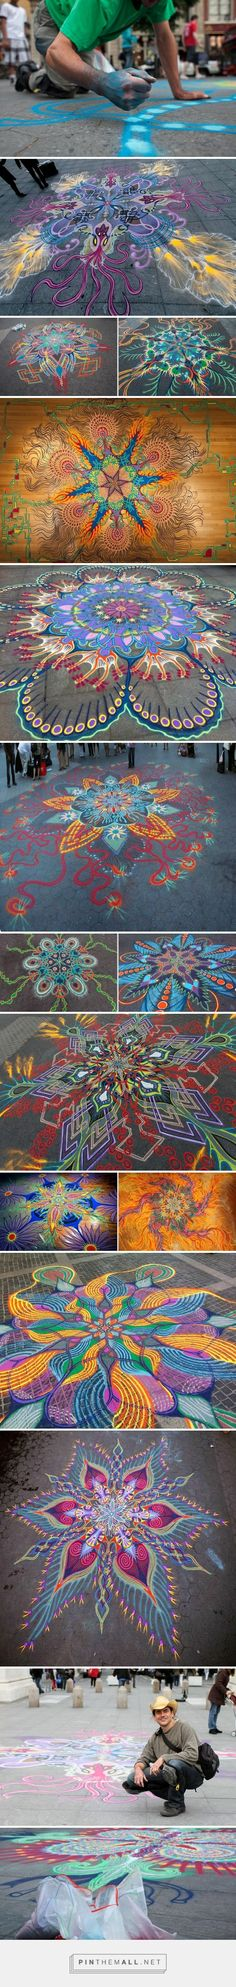 New York-based artist Joe Mangrum has spent the last 8 years drawing beautiful, hypnotic patterns and designs on the streets and squares of New York. Mangrum draws his impressive and expansive works by pouring brightly-colored sand from his hands. The circular geometric forms he uses, as well as his use of colored sand, makes his work resemble traditional Buddhist mandalas, but he also mixed in marine biological elements and other to give his work a unique look.